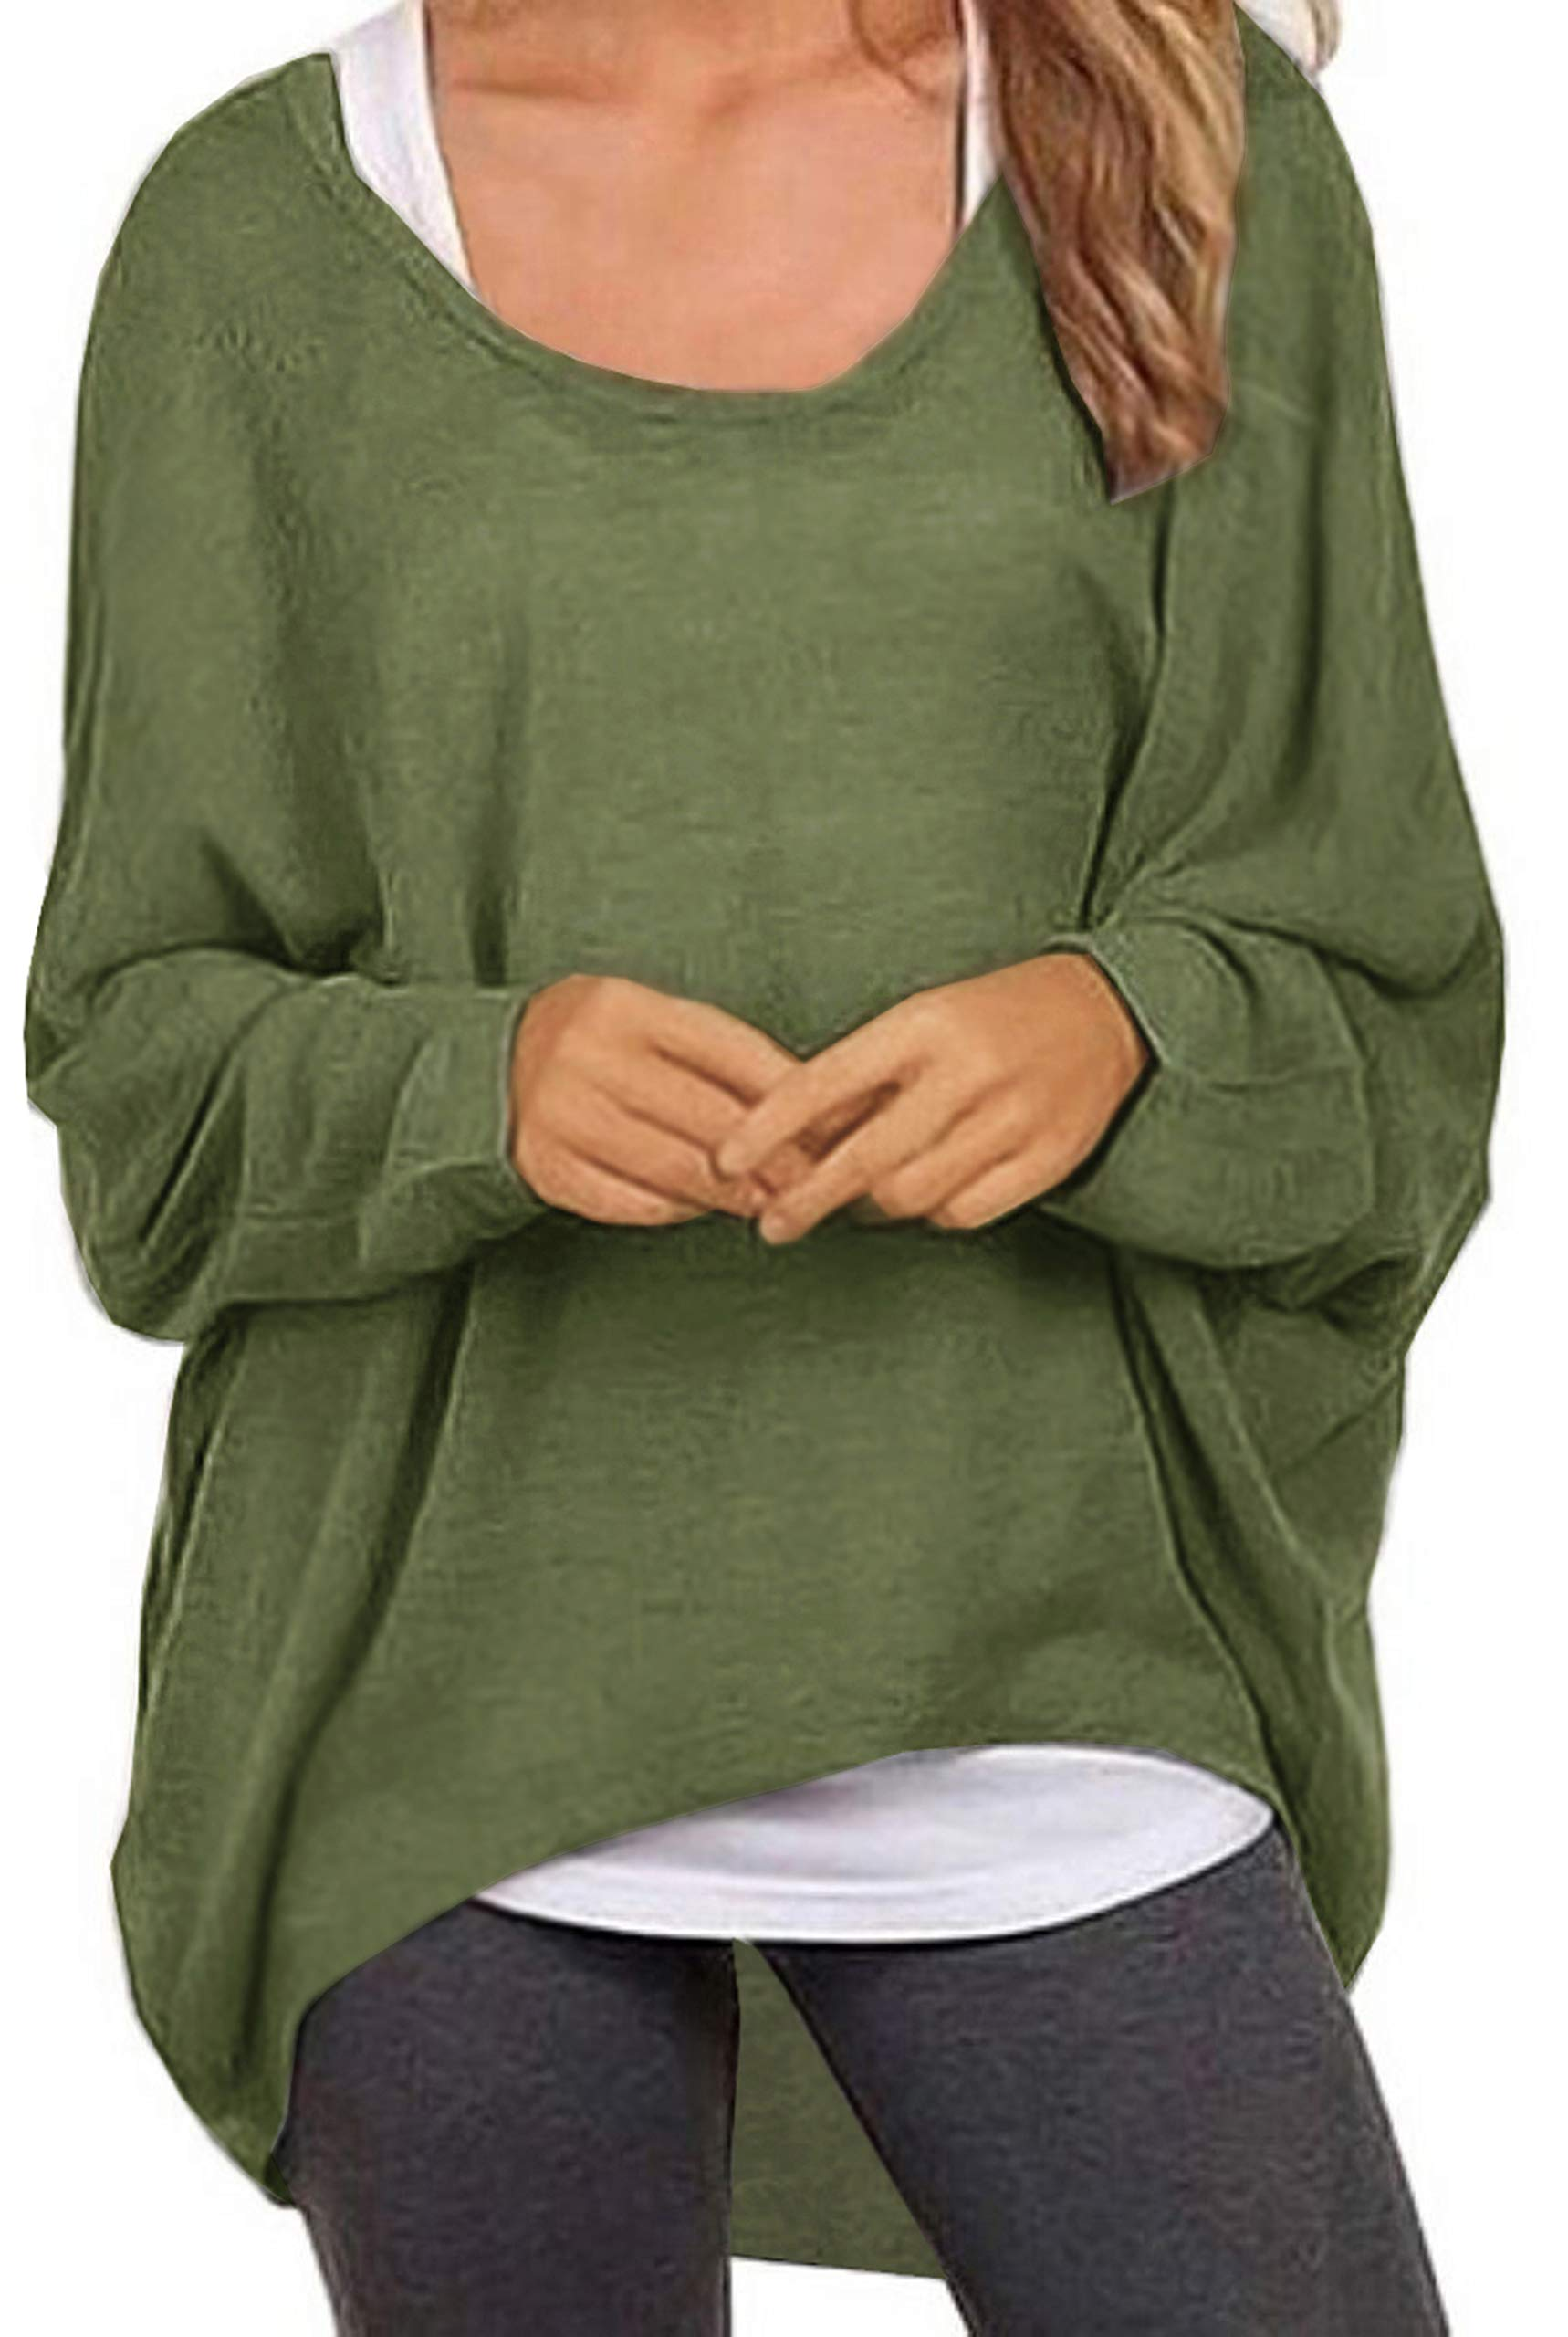 UGET Women's Sweater Casual Oversized Baggy Off-Shoulder Shirts Batwing Sleeve Pullover Shirts Tops Asia XL Army Green